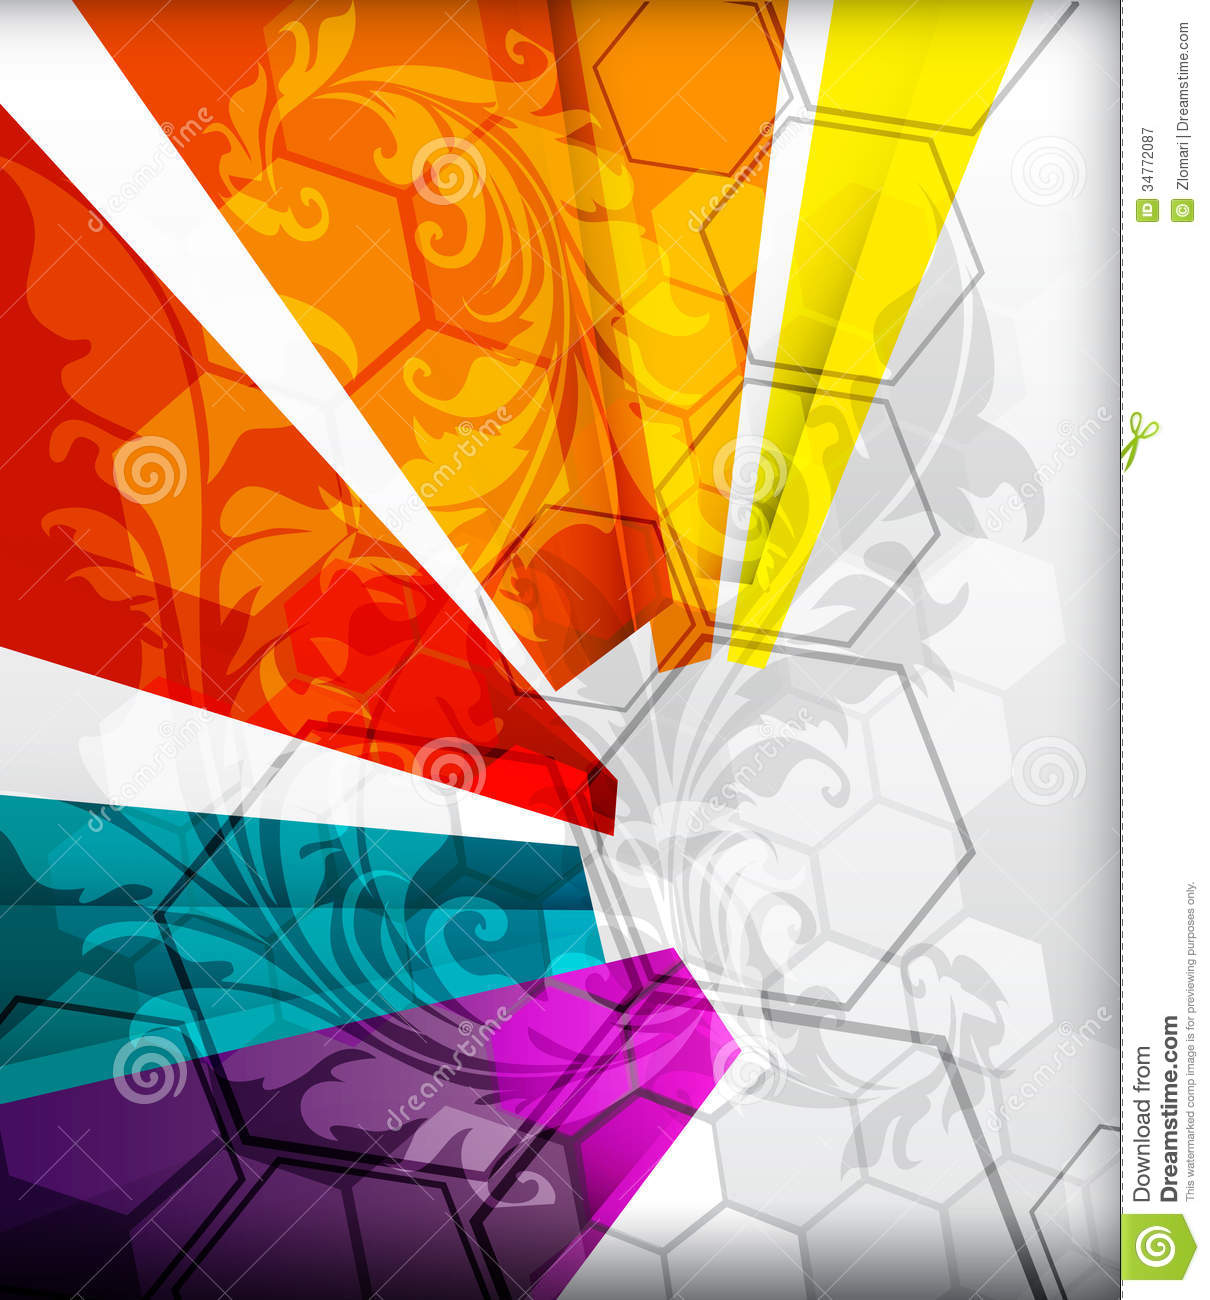 illustrated colorful layout with abstraction royalty free